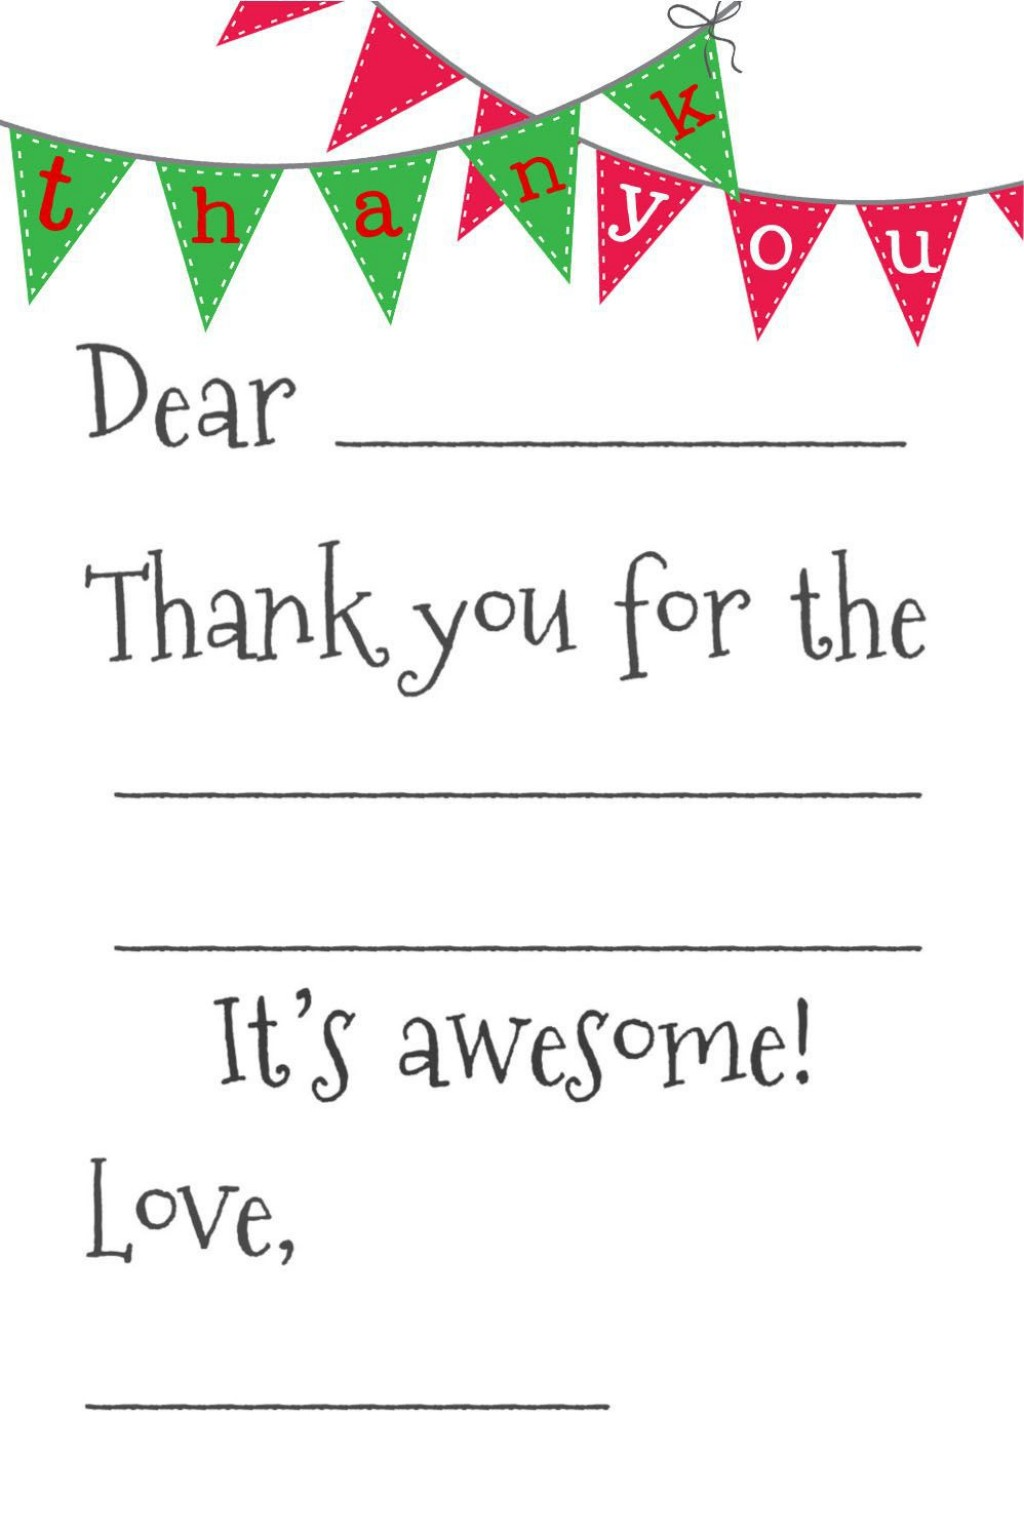 003 Incredible Free Thank You Note Template Word Photo  Card DownloadLarge